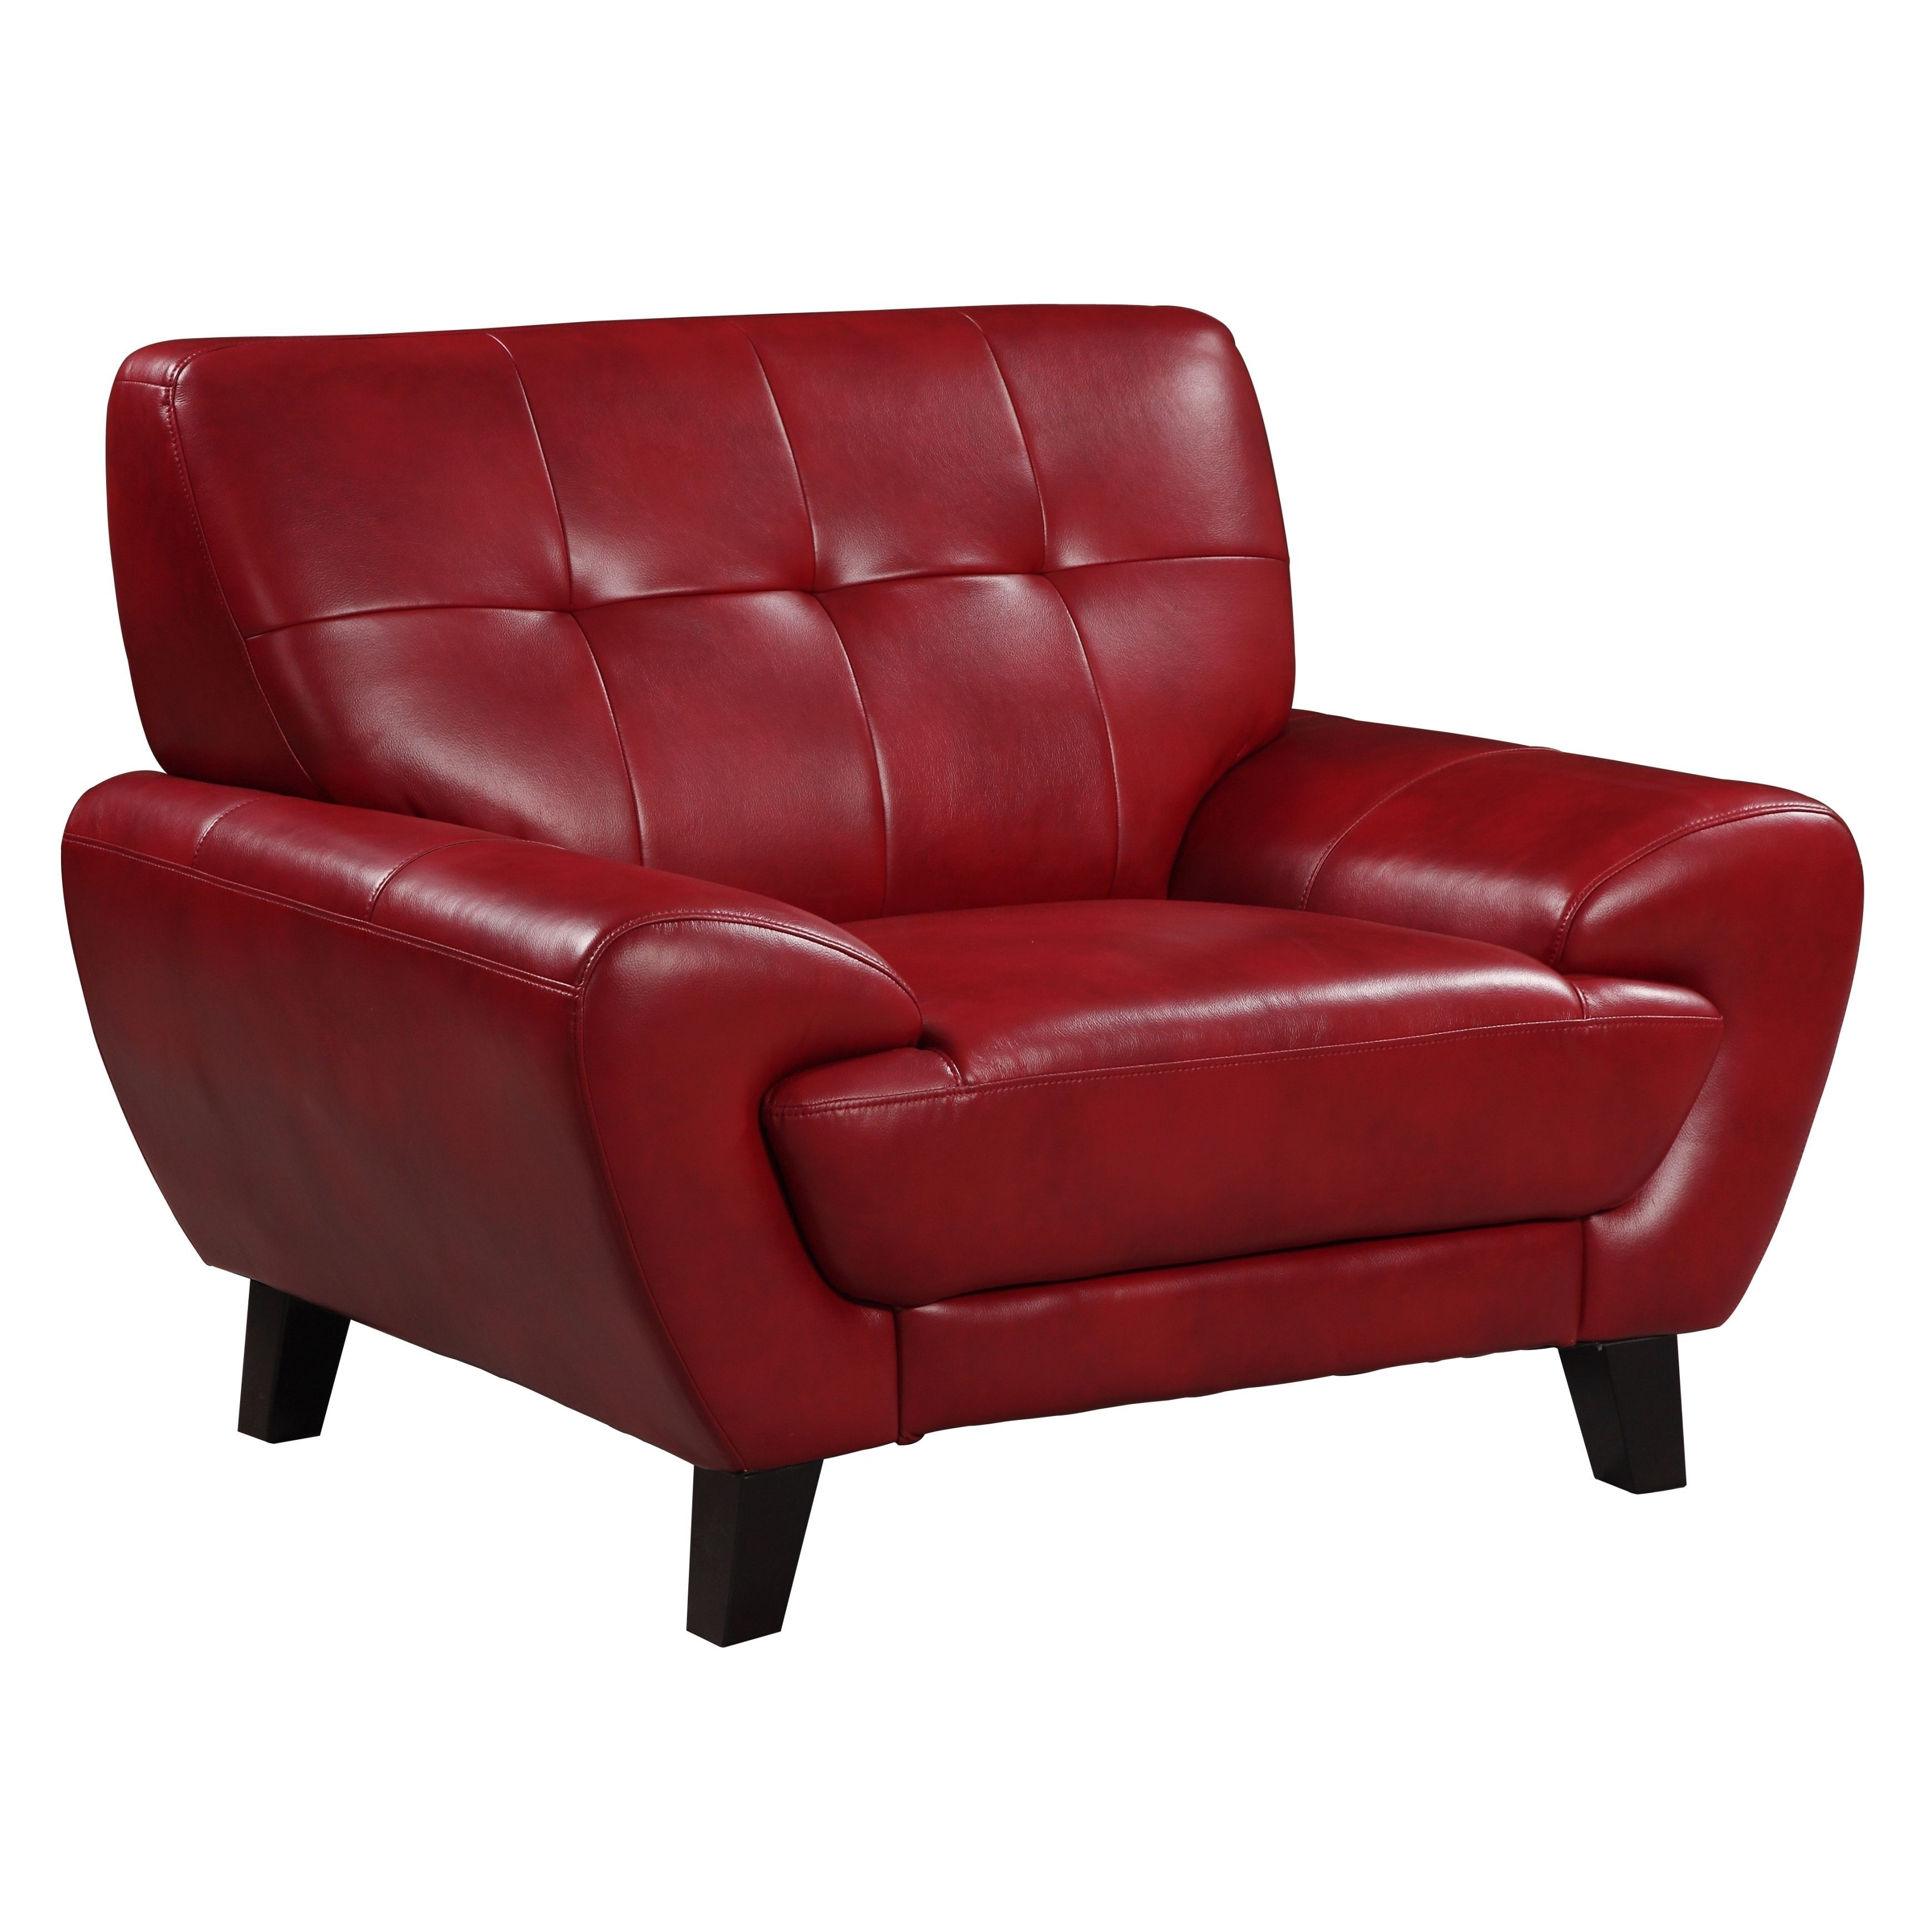 Add Style And Comfort To Your Home With This Plush Leather Chair. The  Tufted Details